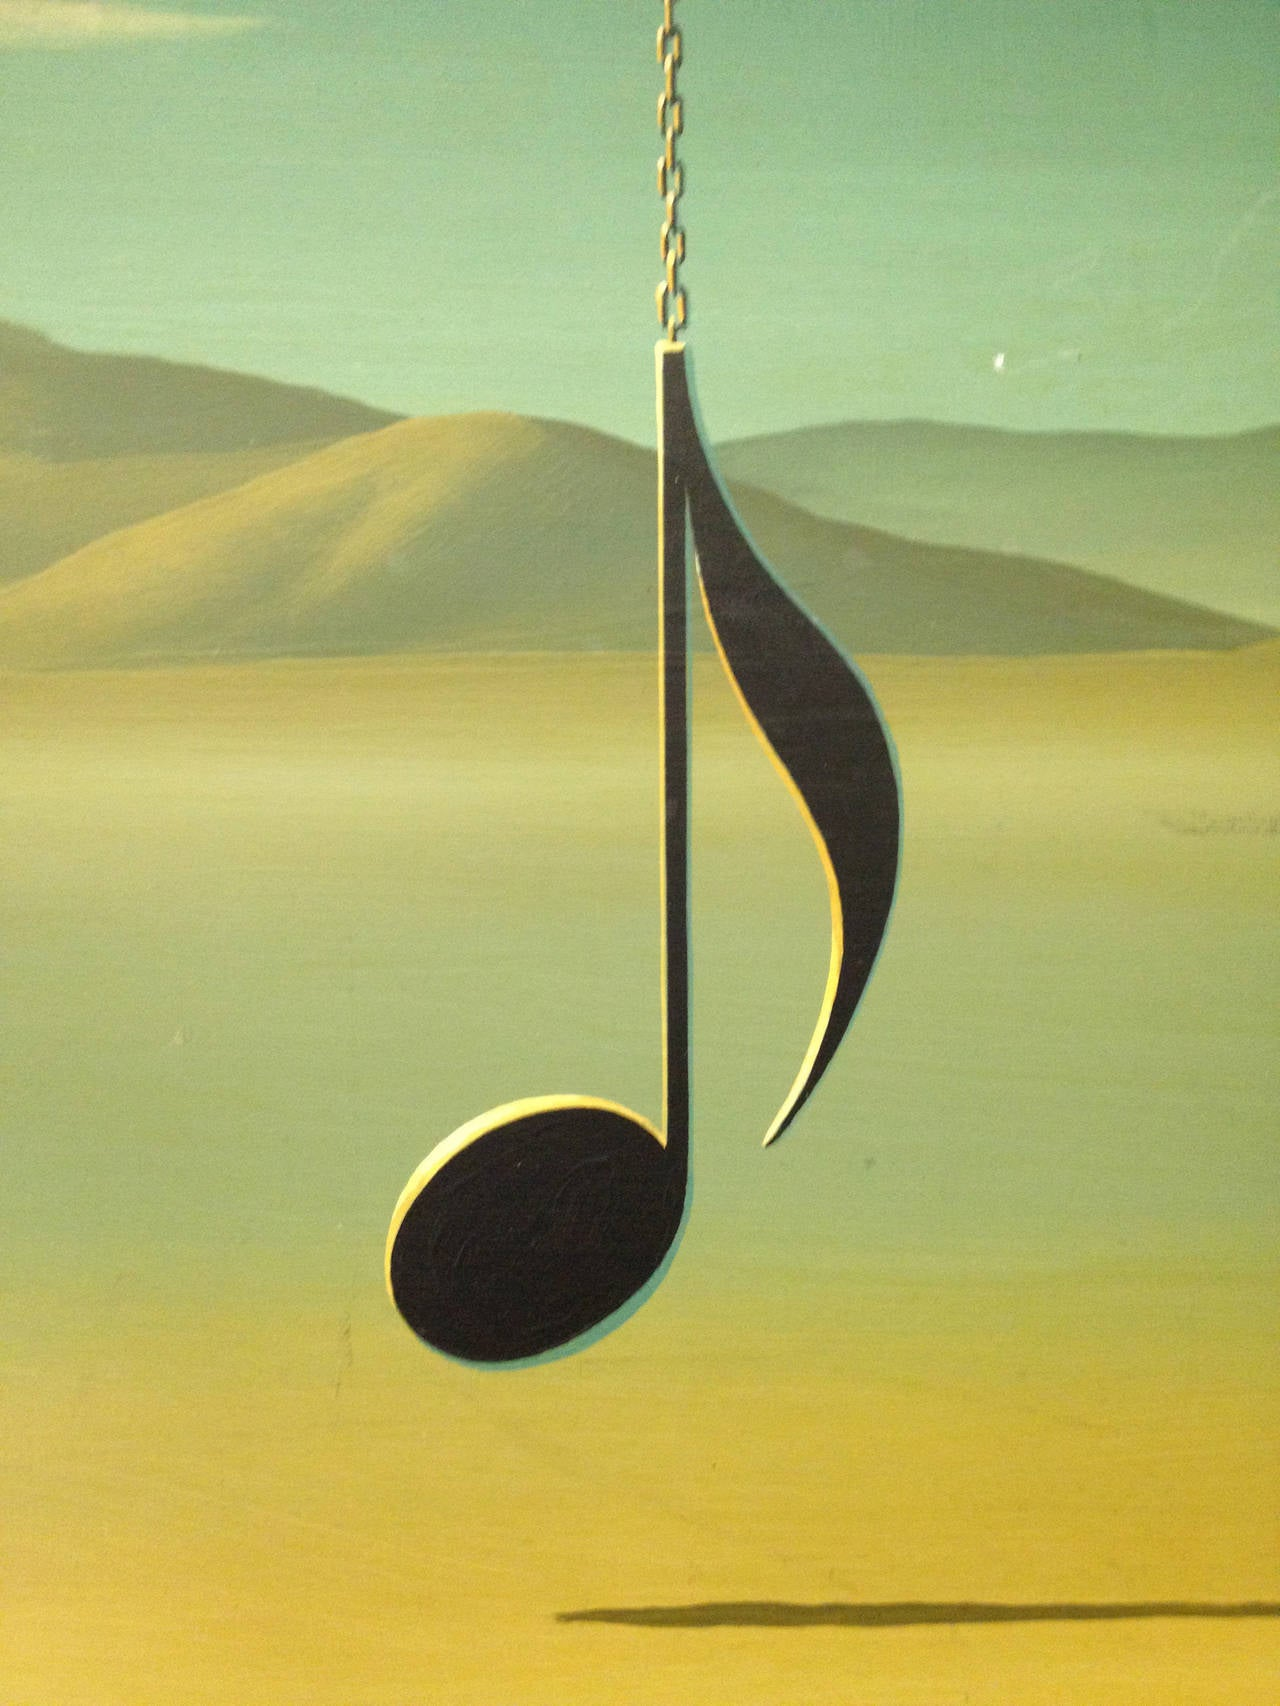 Quot The Lonely One Quot Surreal Painting By Rodney Evans Bacon At